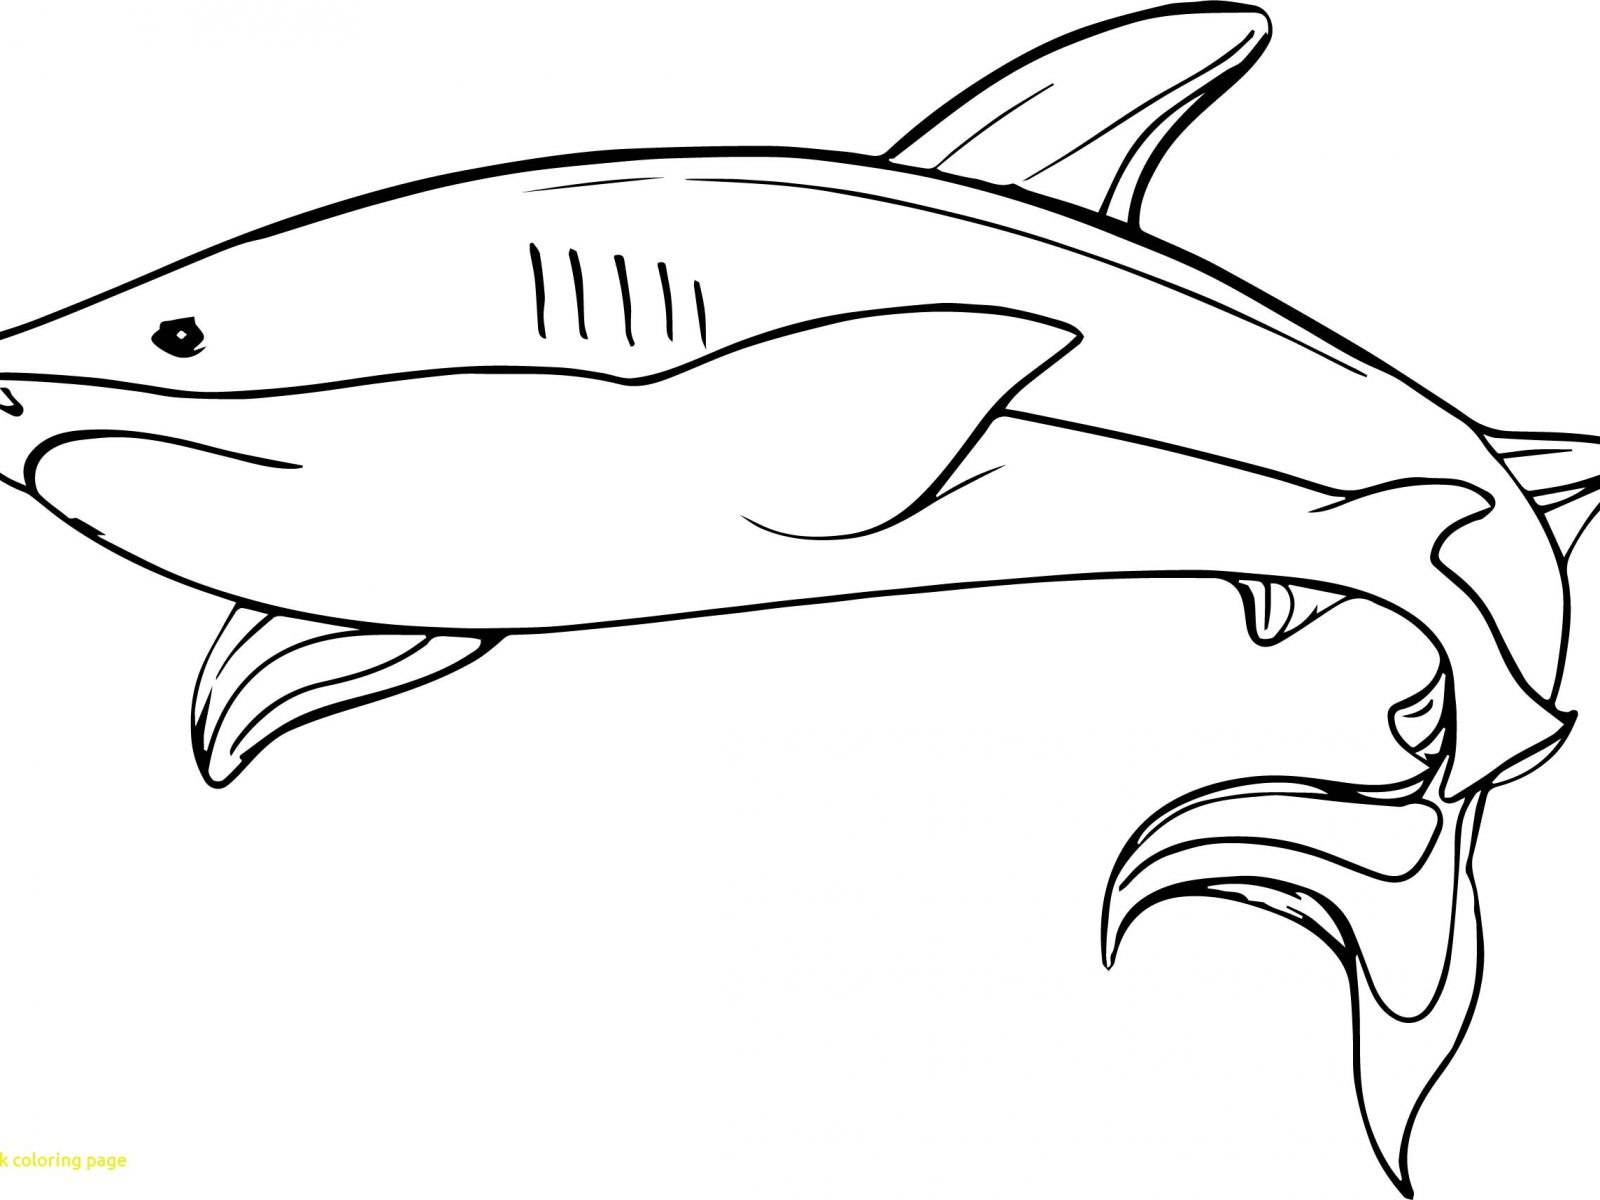 Coloring Pages Sharks Hammerhead Sharkoring Sheets Pictures Pagesouring Stupendous Shark